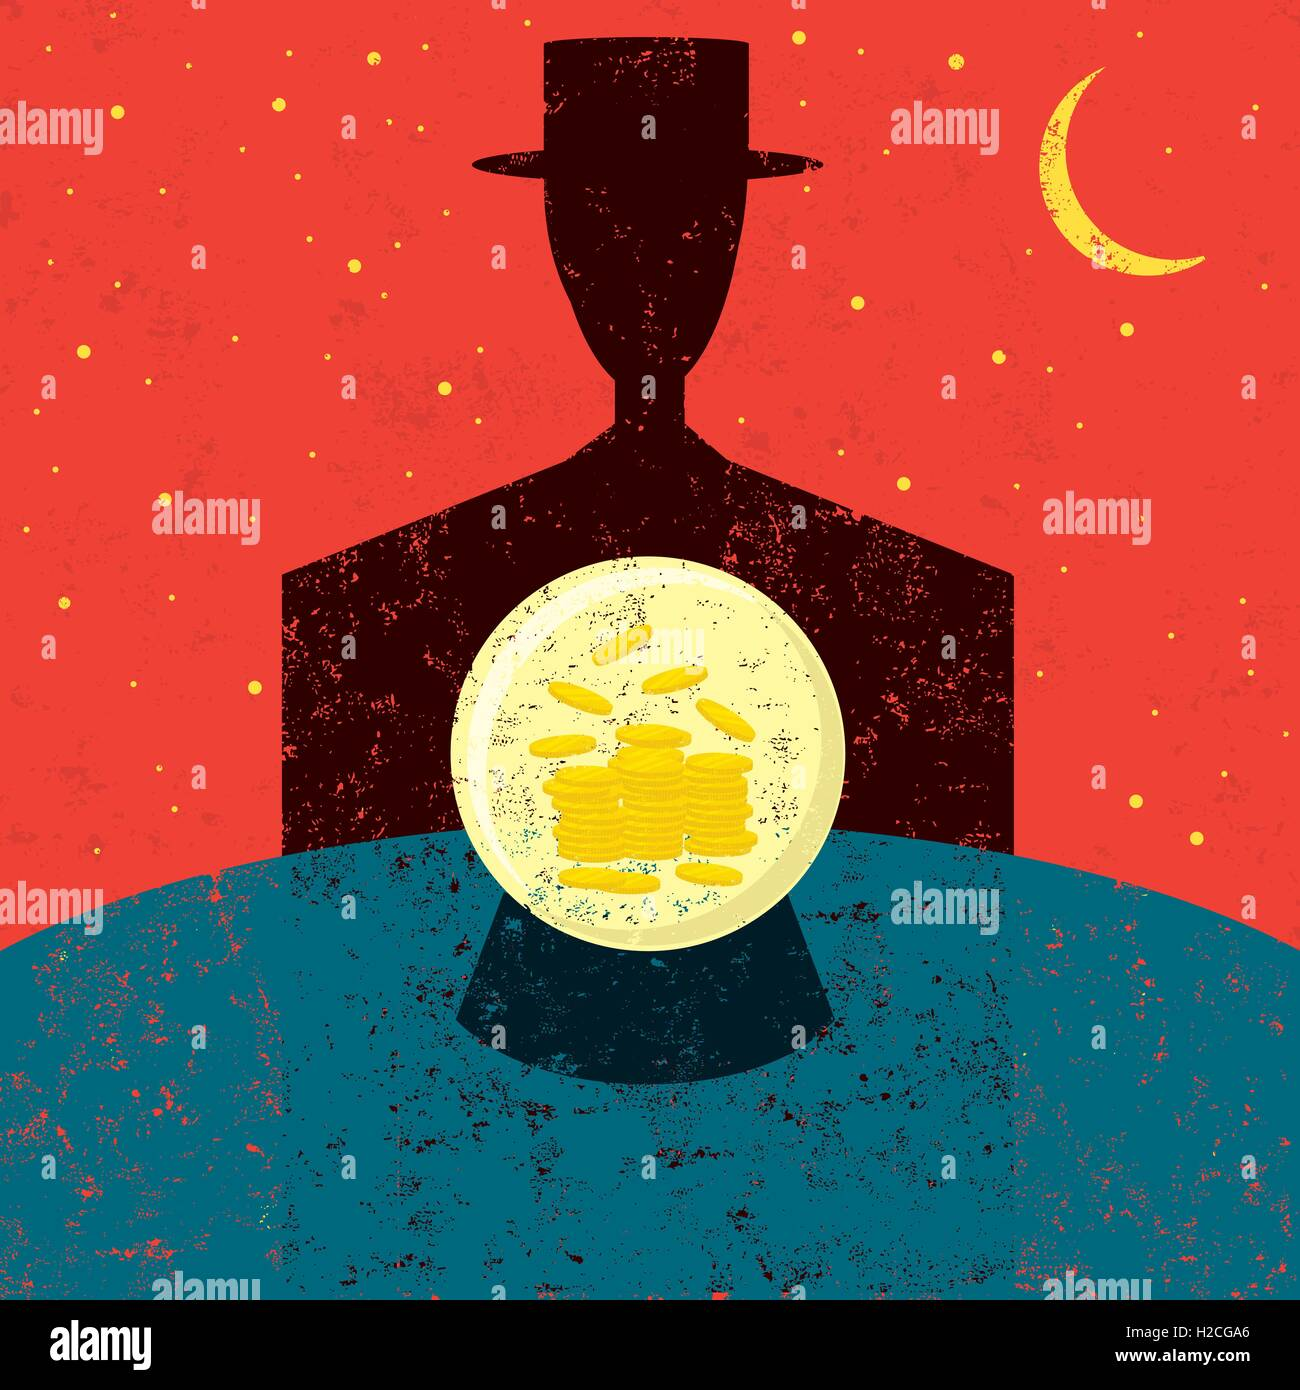 Financial Fortune Teller A businessman looking into a crystal ball and seeing wealth in his future. - Stock Vector